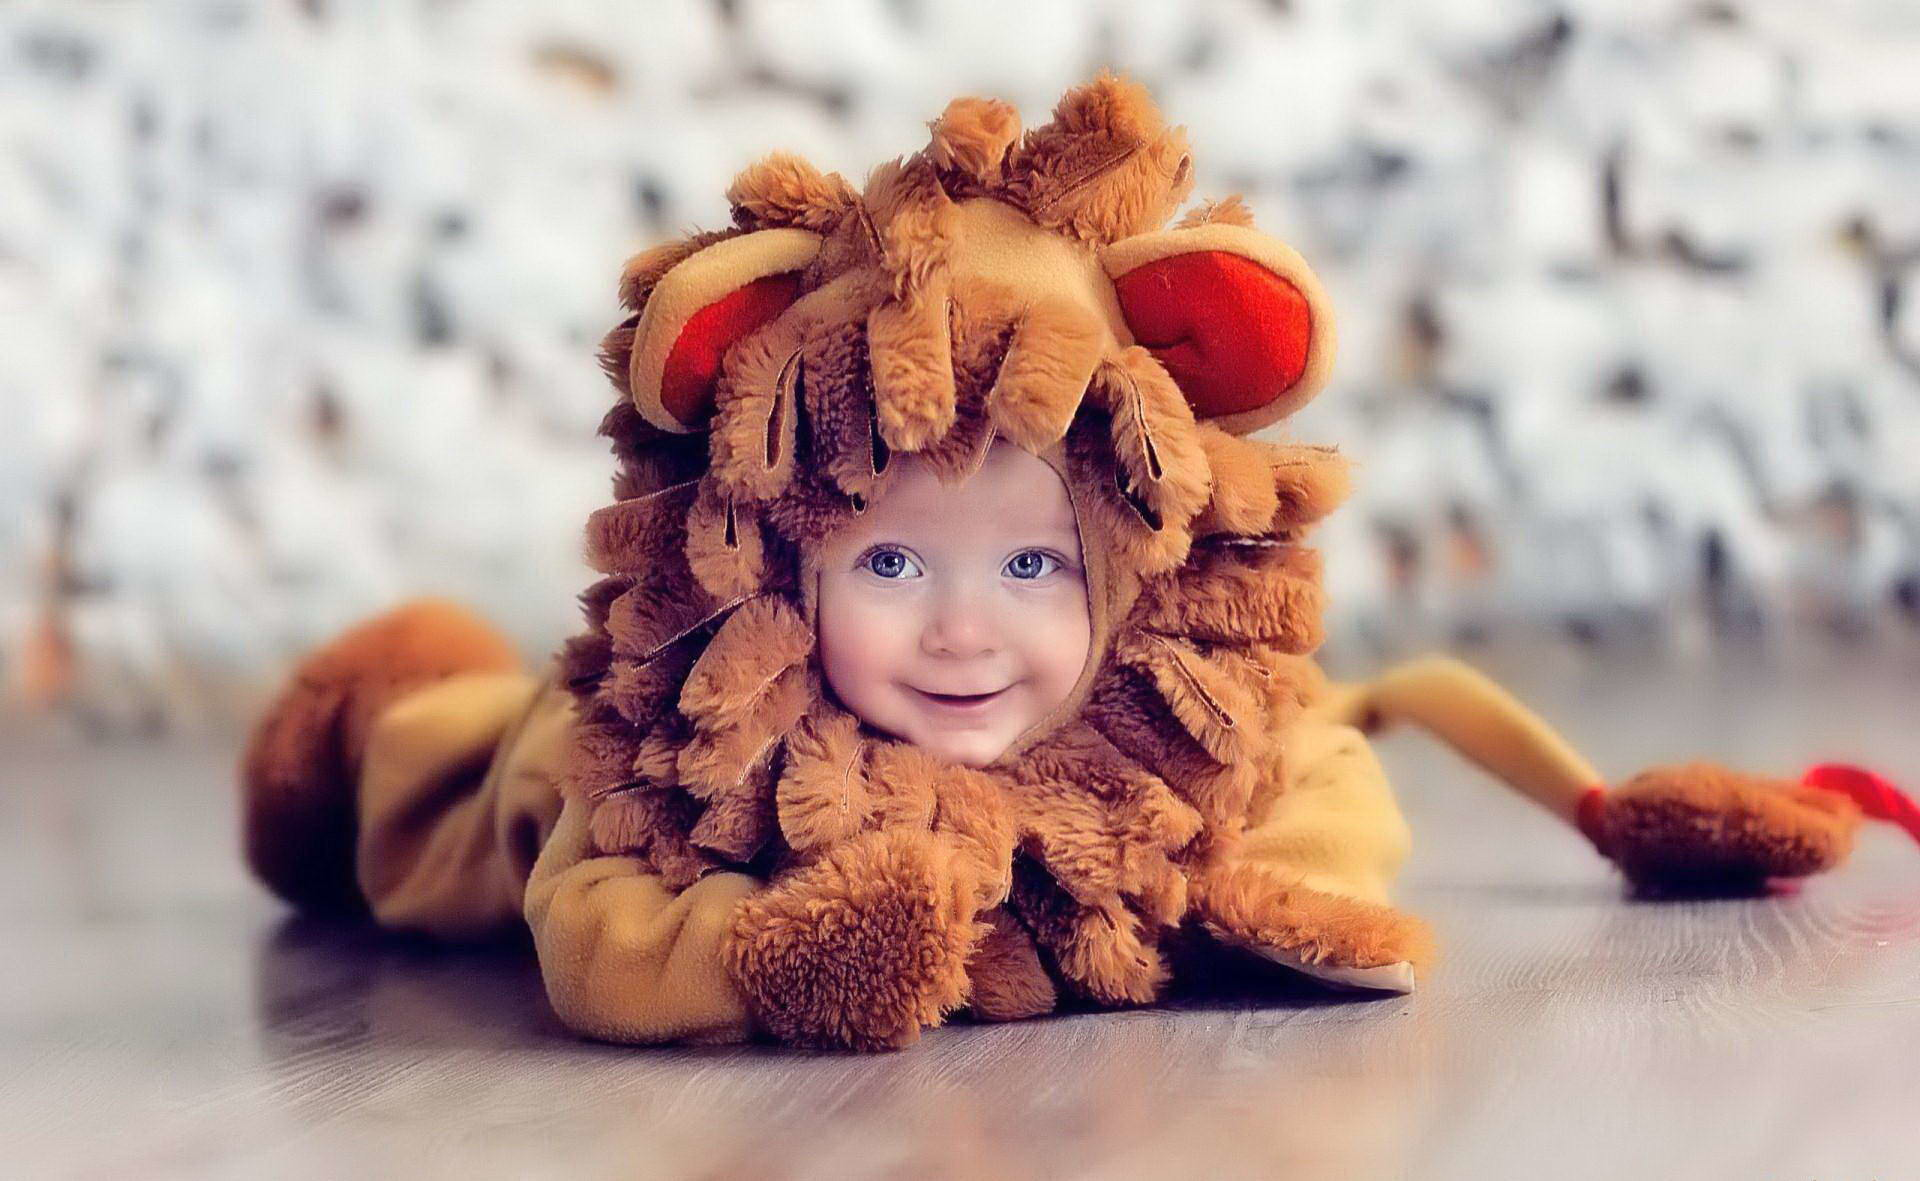 1920x1181 Funny Baby Costumes 11 Cool Hd Wallpaper